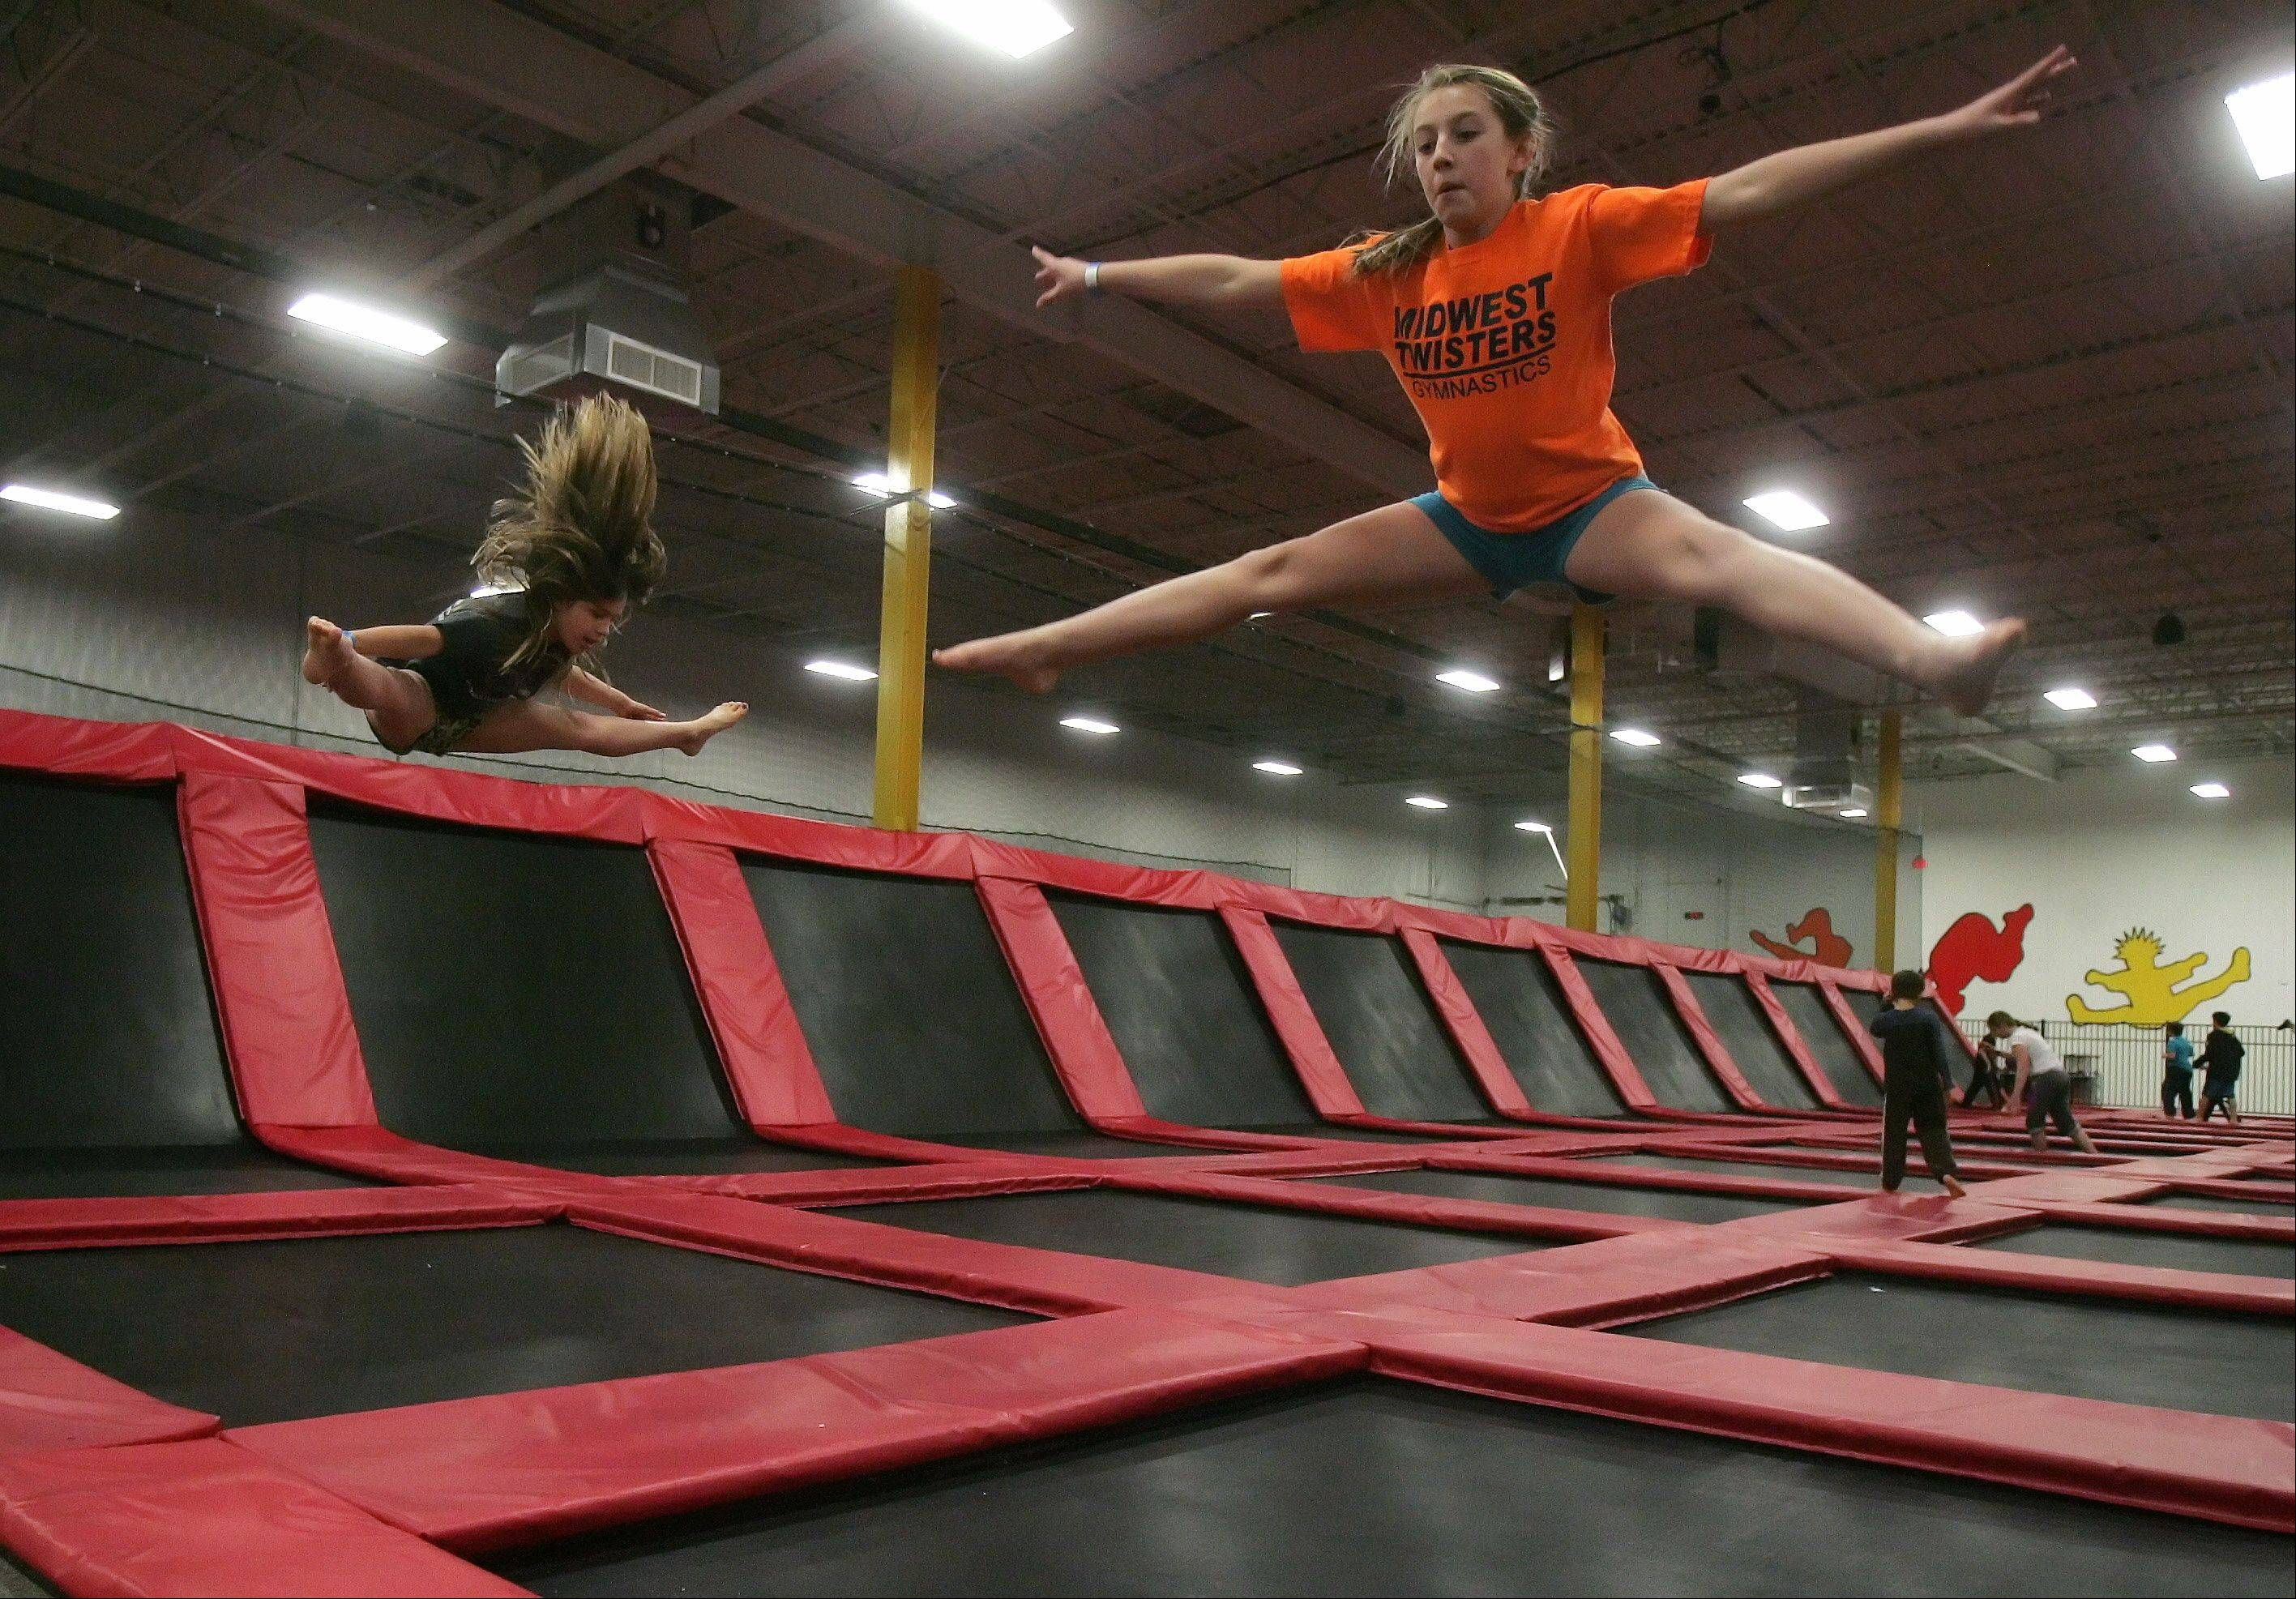 Emma Lloyd, right, and Sophia Cepeda, of Deerfield, practice tricks as they jump around at Xtreme Trampolines in Buffalo Grove. The entertainment center offers an active alternative for kids in the suburbs.